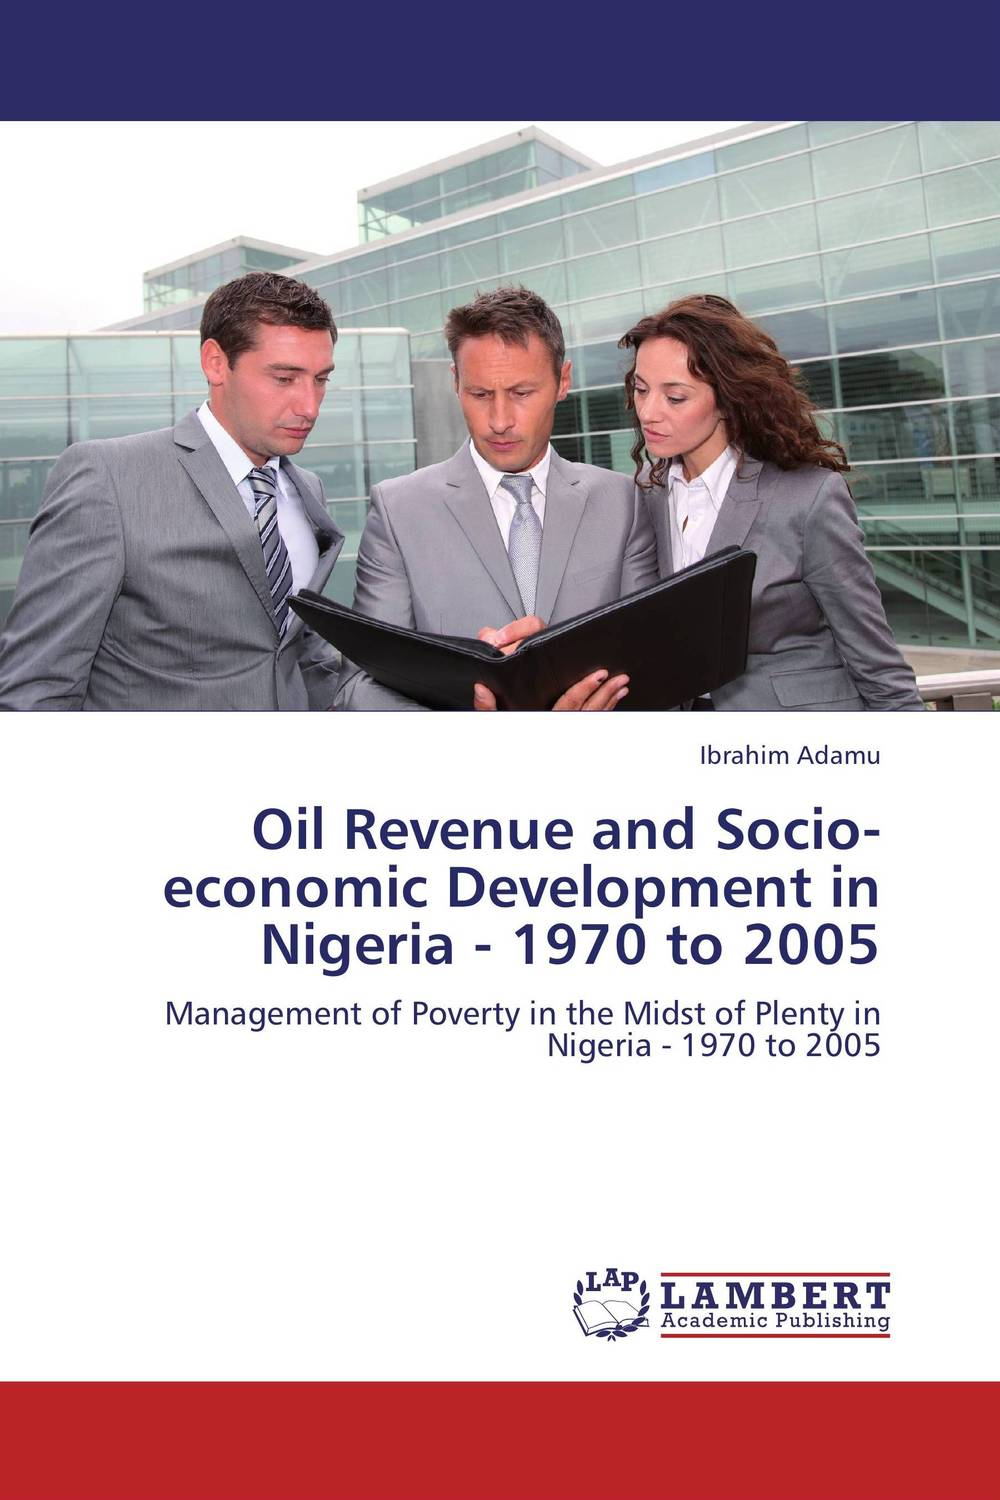 купить  Oil Revenue and Socio-economic Development in Nigeria - 1970 to 2005  онлайн